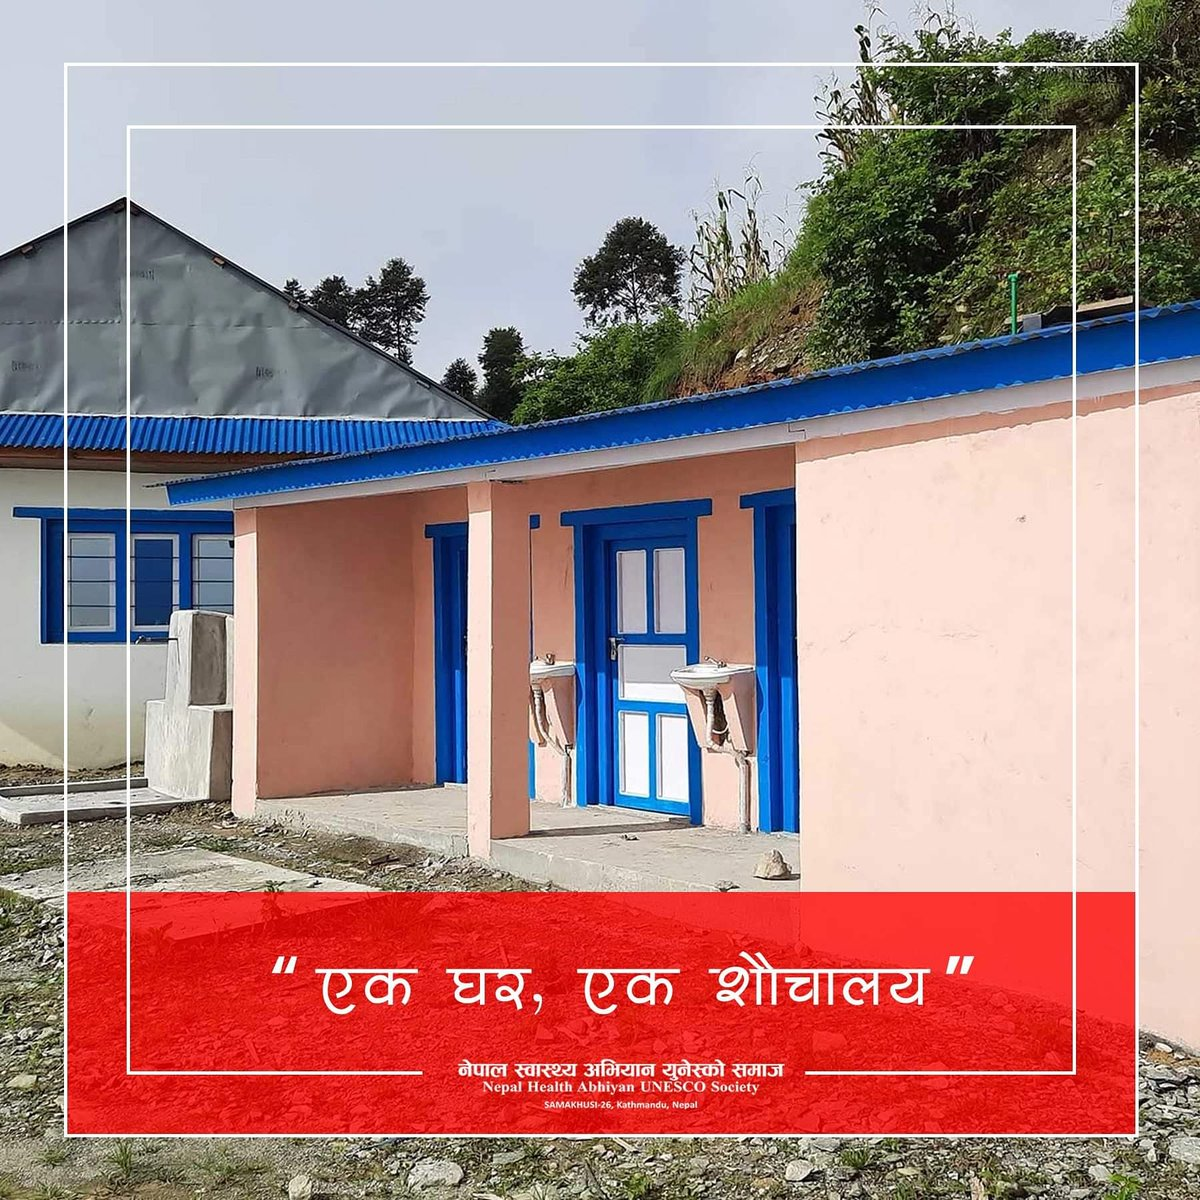 Nepal Health Abhiyan aims to help build restroom for those in countries without a proper restroom at their home and encourage them tackle the global sanitation crisis https://t.co/wkZ11PcZRj  #nepalhealthabhiyan #combatcovid #health #helpinghands #donations #associations #INGO https://t.co/CHDKCZOgV1